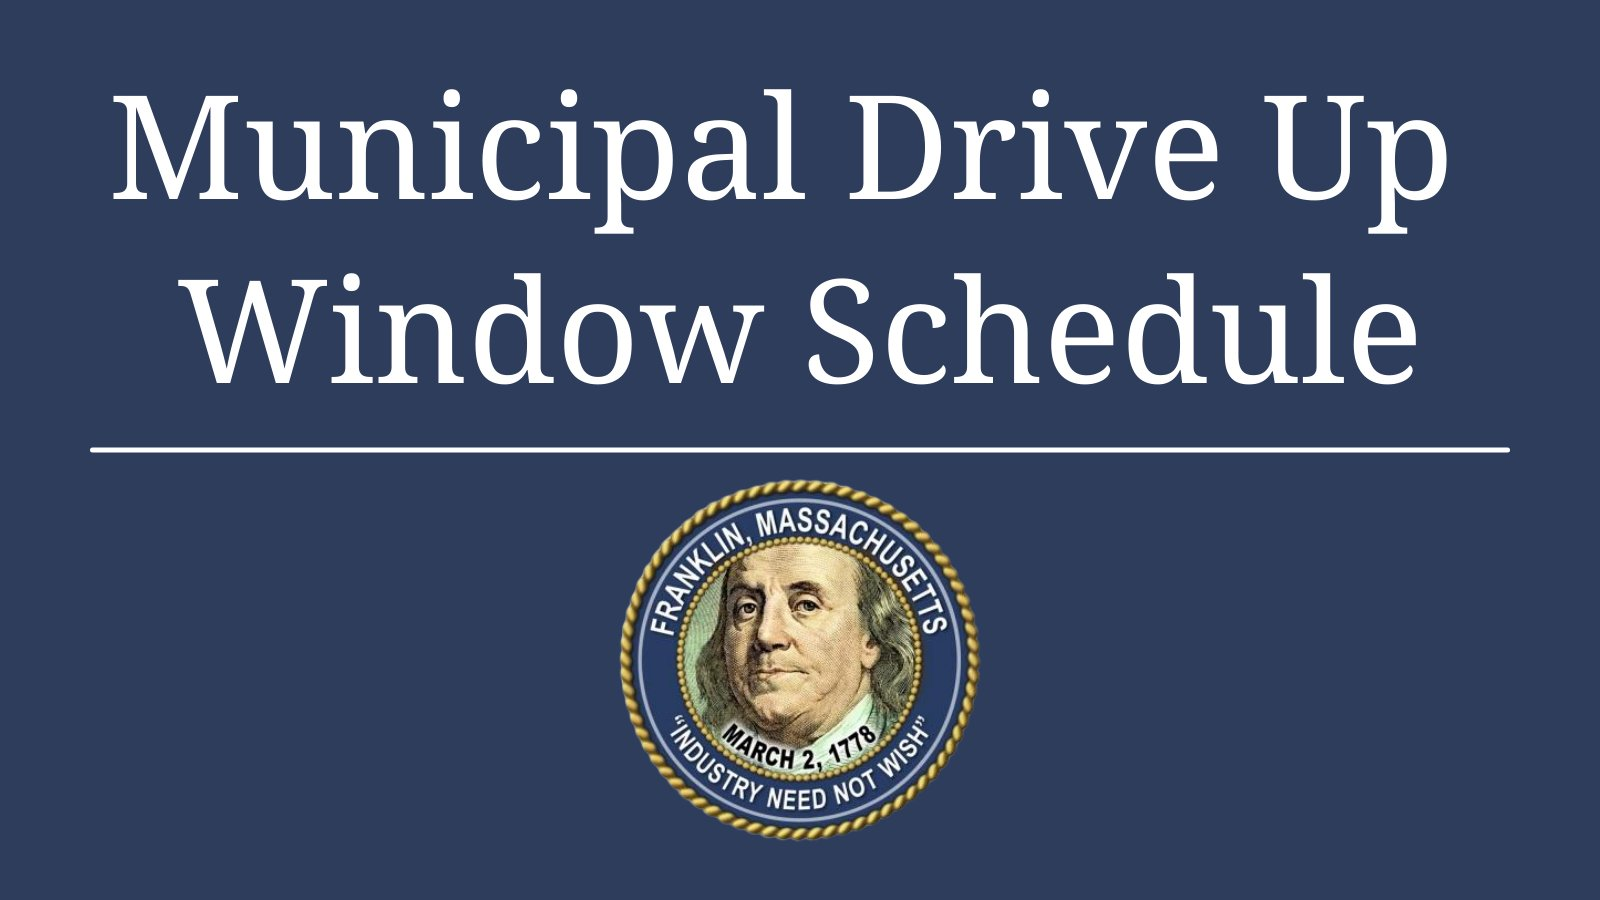 Town of Franklin, MA: drive up window closed on Wednesday, Apr 21 - come into the lobby